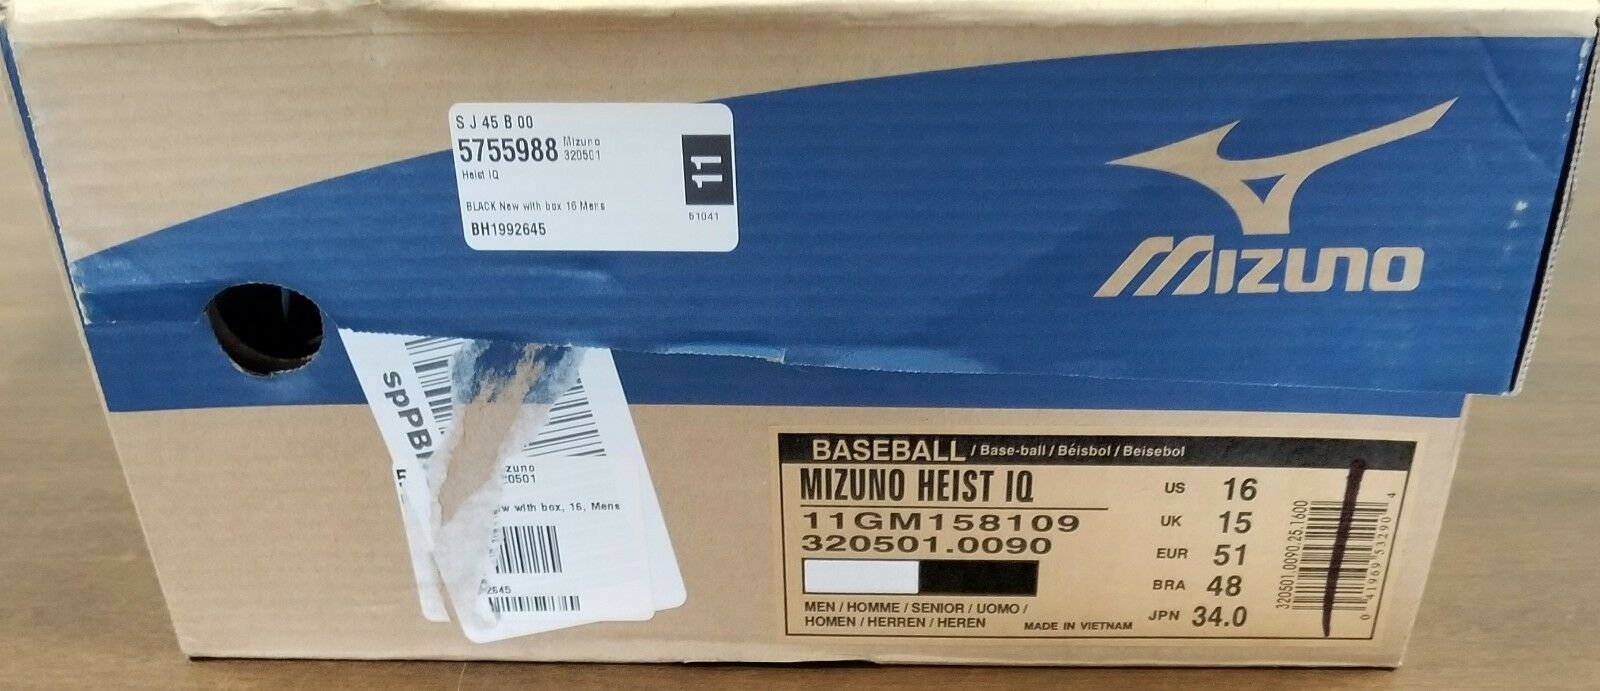 MIZUNO HEIST IQ MID 320501 BASEBALL METAL CLEATS SIZE 16 WITH - Weiß - NEW WITH 16 BOX 4af1e2